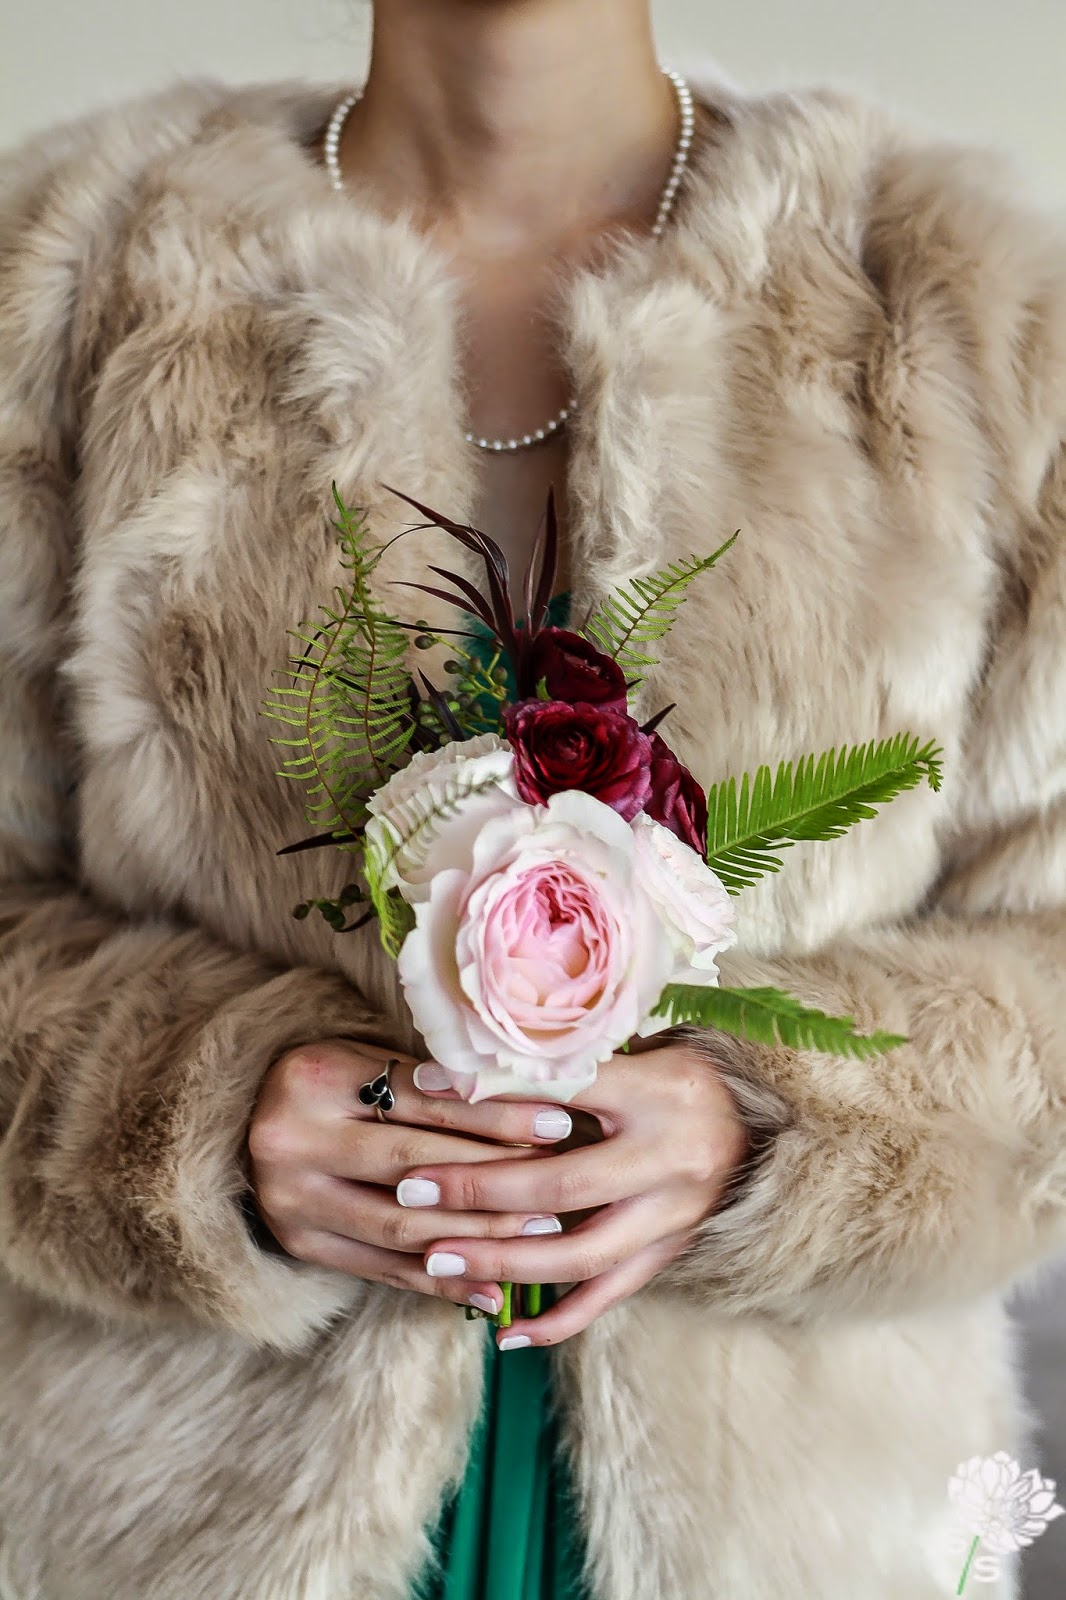 The Roundhouse Wedding - Beacon, NY - Hudson Valley Wedding - Maid of Honor Bouquet - Wedding Flowers - Splendid Stems Floral Designs